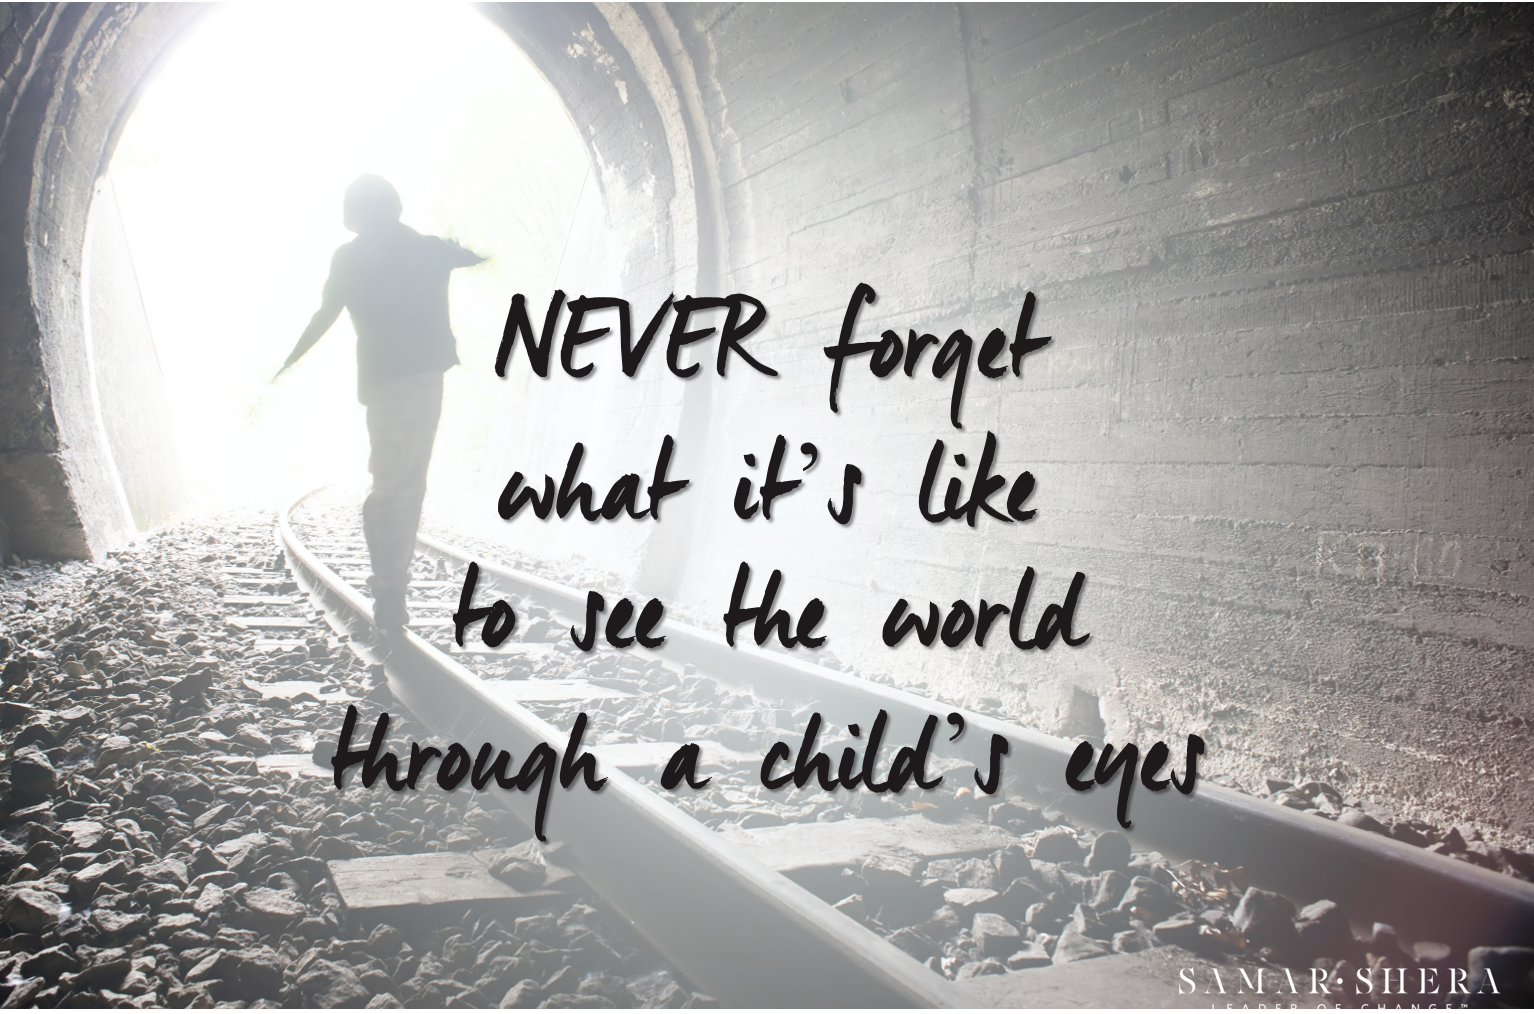 never forget what it's like to see the world through a child's eyes2